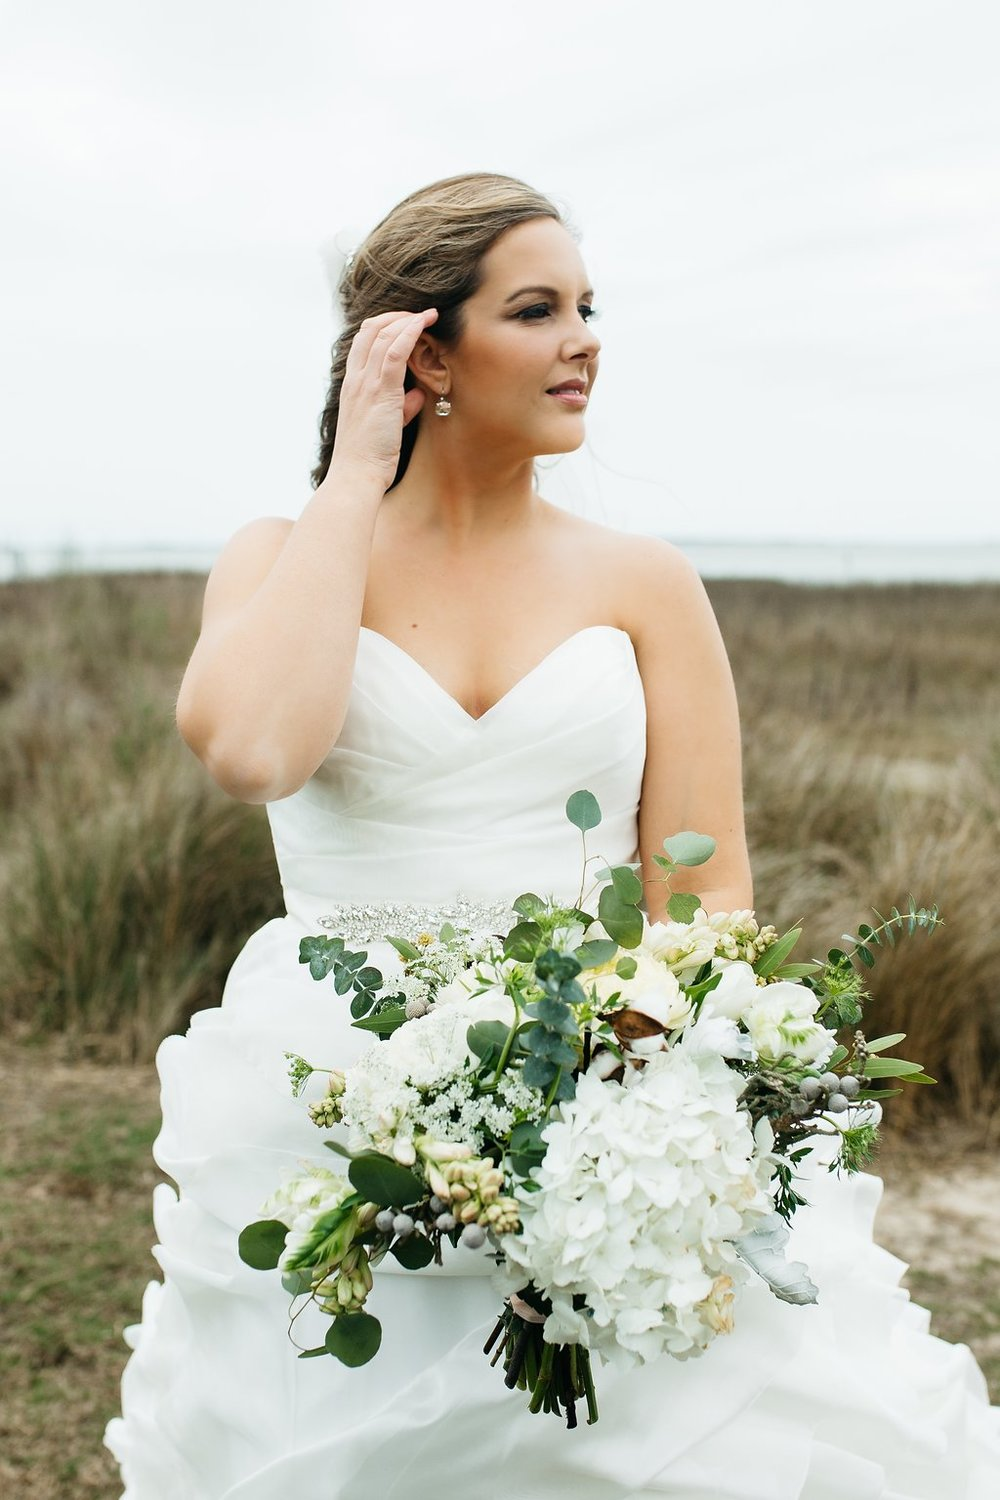 savannah-bridal-shop-i-and-b-bride-devon-auburn-by-maggie-sottero-savannah-wedding-dress-savannah-wedding-gown-savannah-bridal-boutique-cana-dunlap-photography-12.jpg